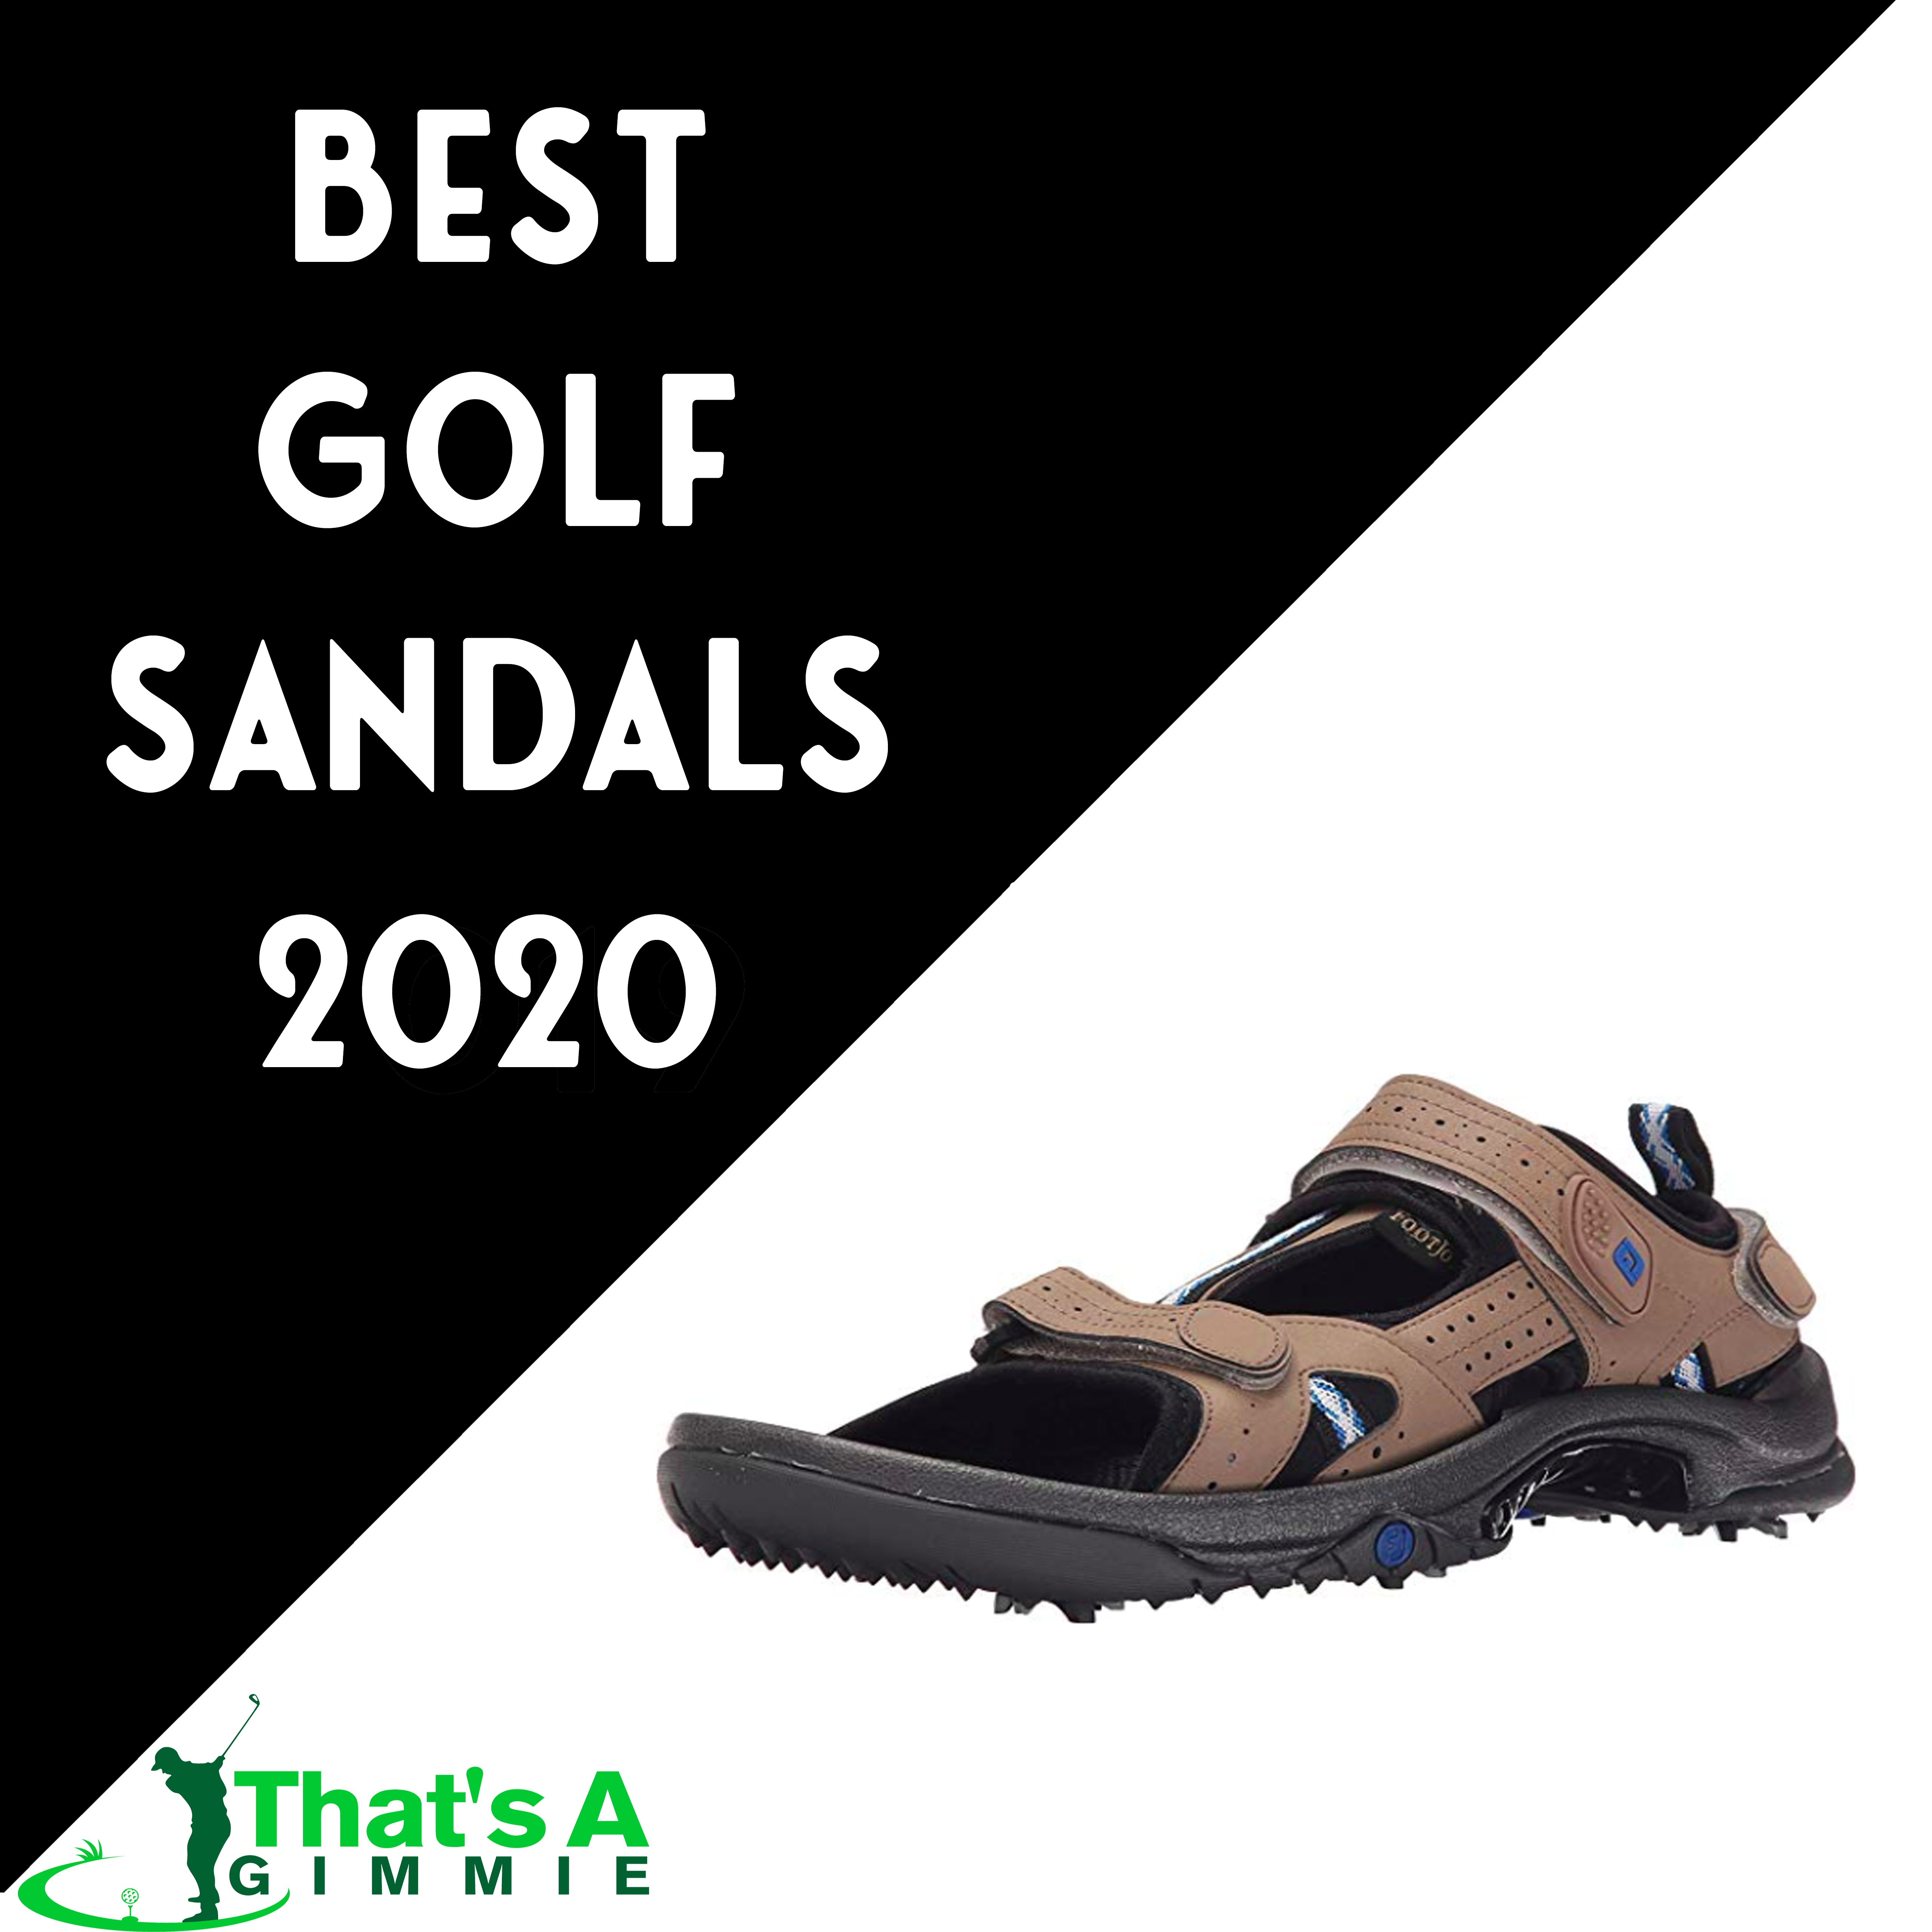 Sandals, Open toed shoes, Golf